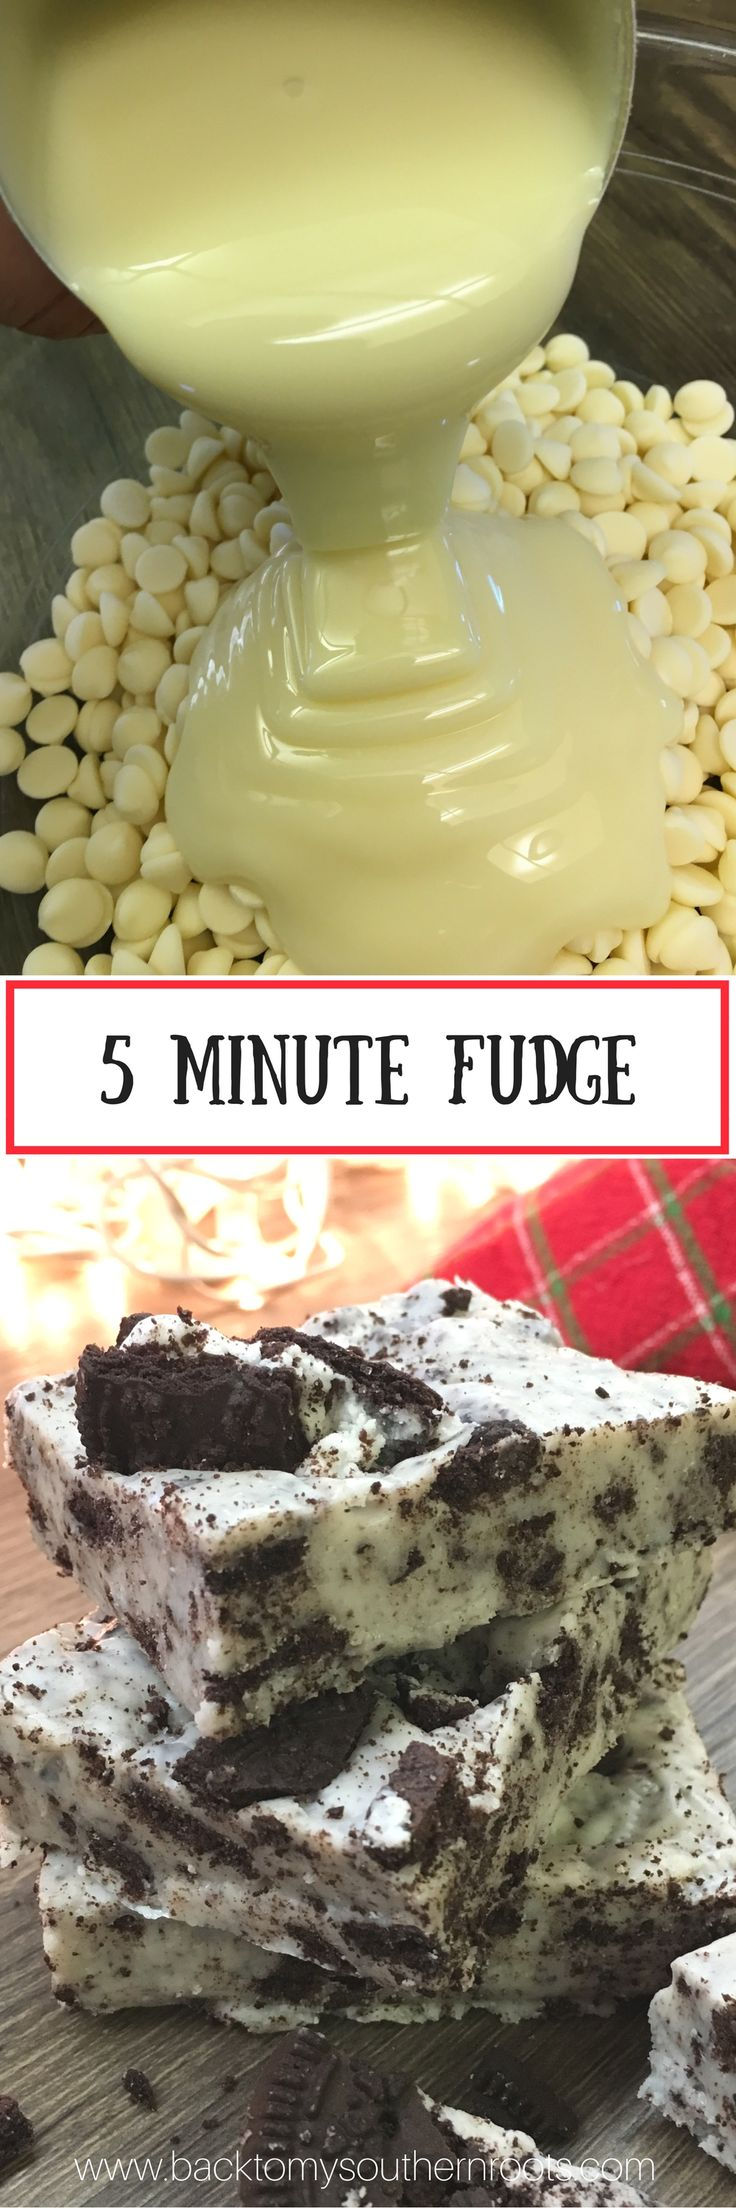 Five Minute Fudge is a quick microwave recipe that only requires three ingredients. It's a delicious holiday Christmas treat that everyone will love.